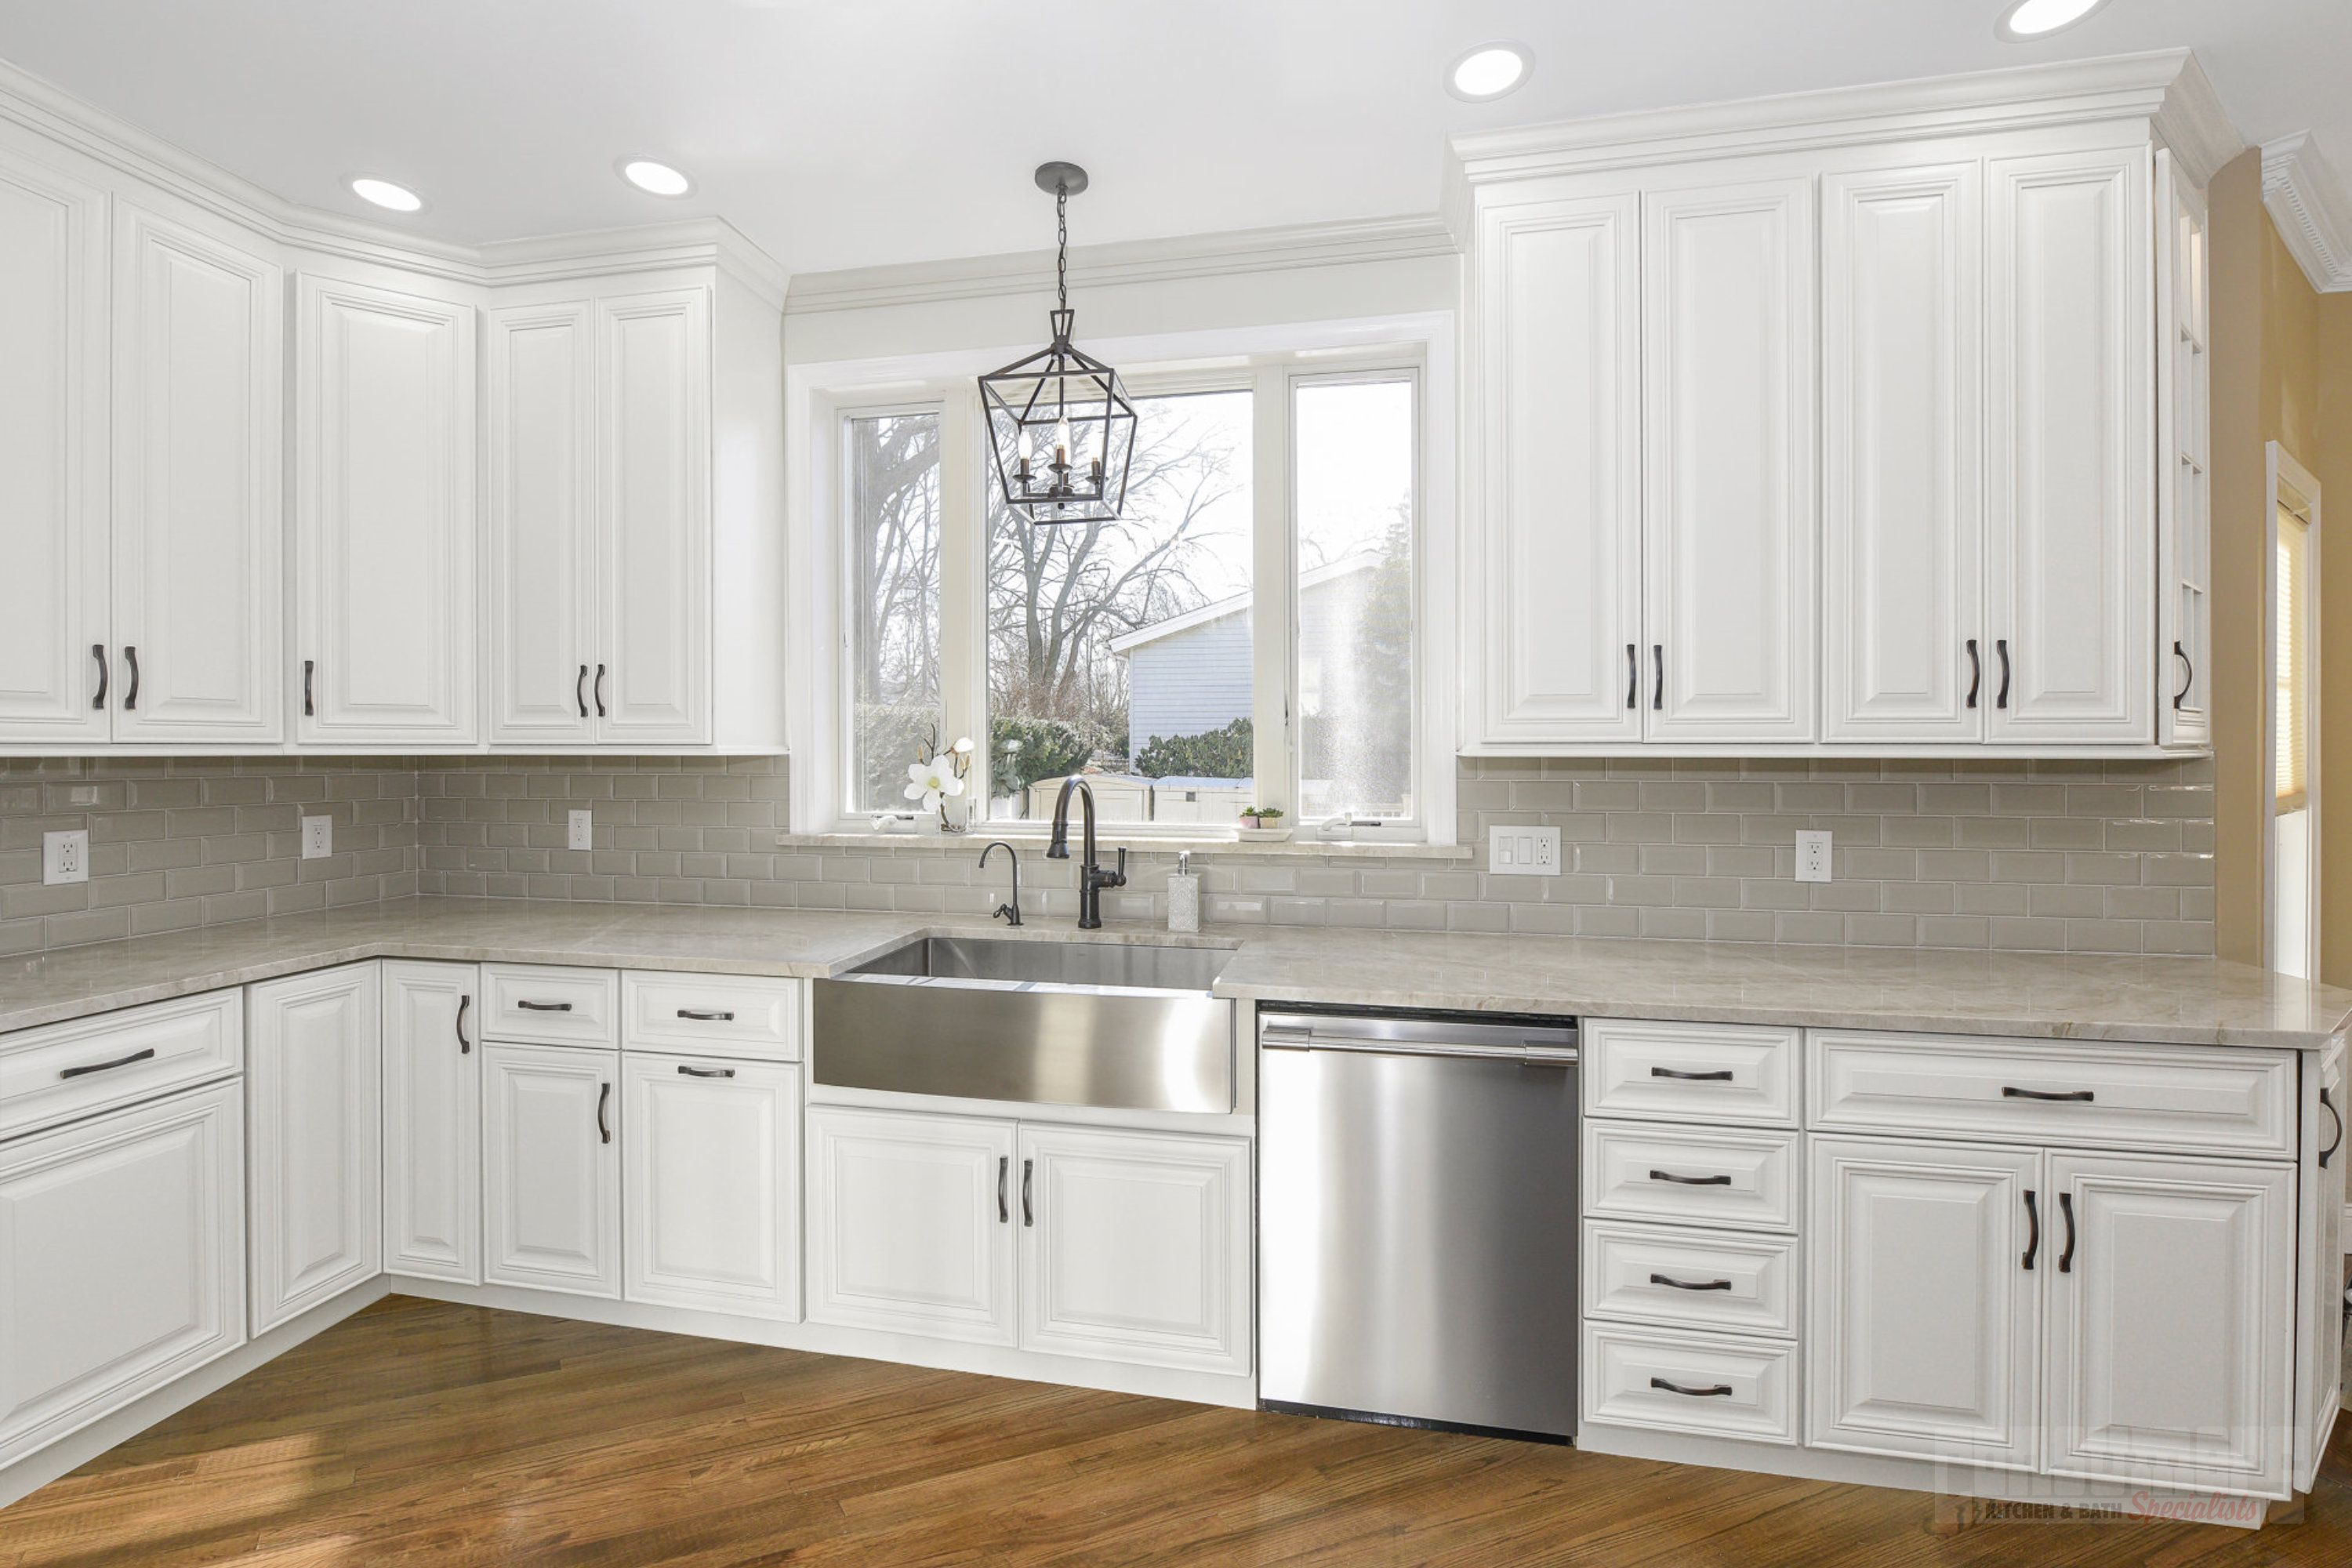 Pin By Consumers Kitchens Baths On Merrick Taj Mahal In 2020 Kitchen Gallery Maple Cabinets Kitchen